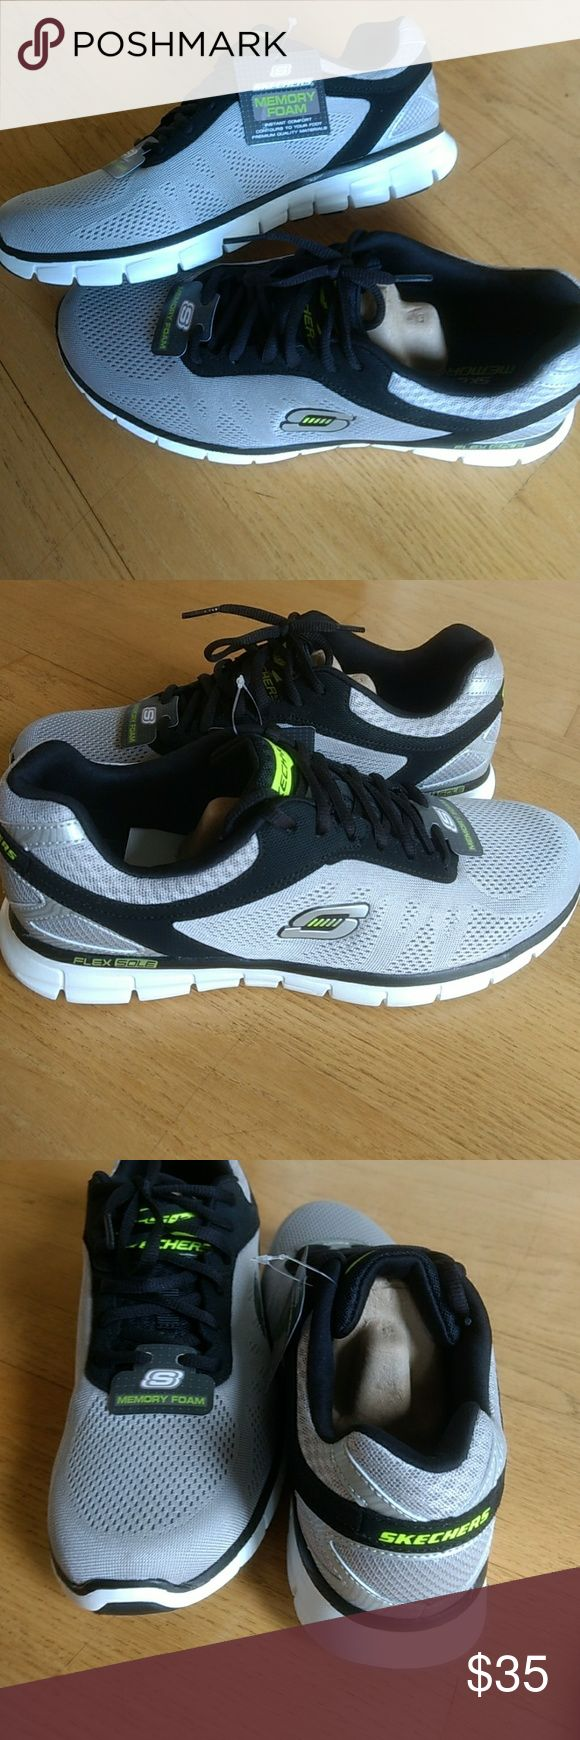 Sketchers sneakers Knit mesh fabric athletic training sneakers with air cooled memory foam insoles. Brand new!! Never been worn. Size 10. Skechers Shoes Athletic Shoes